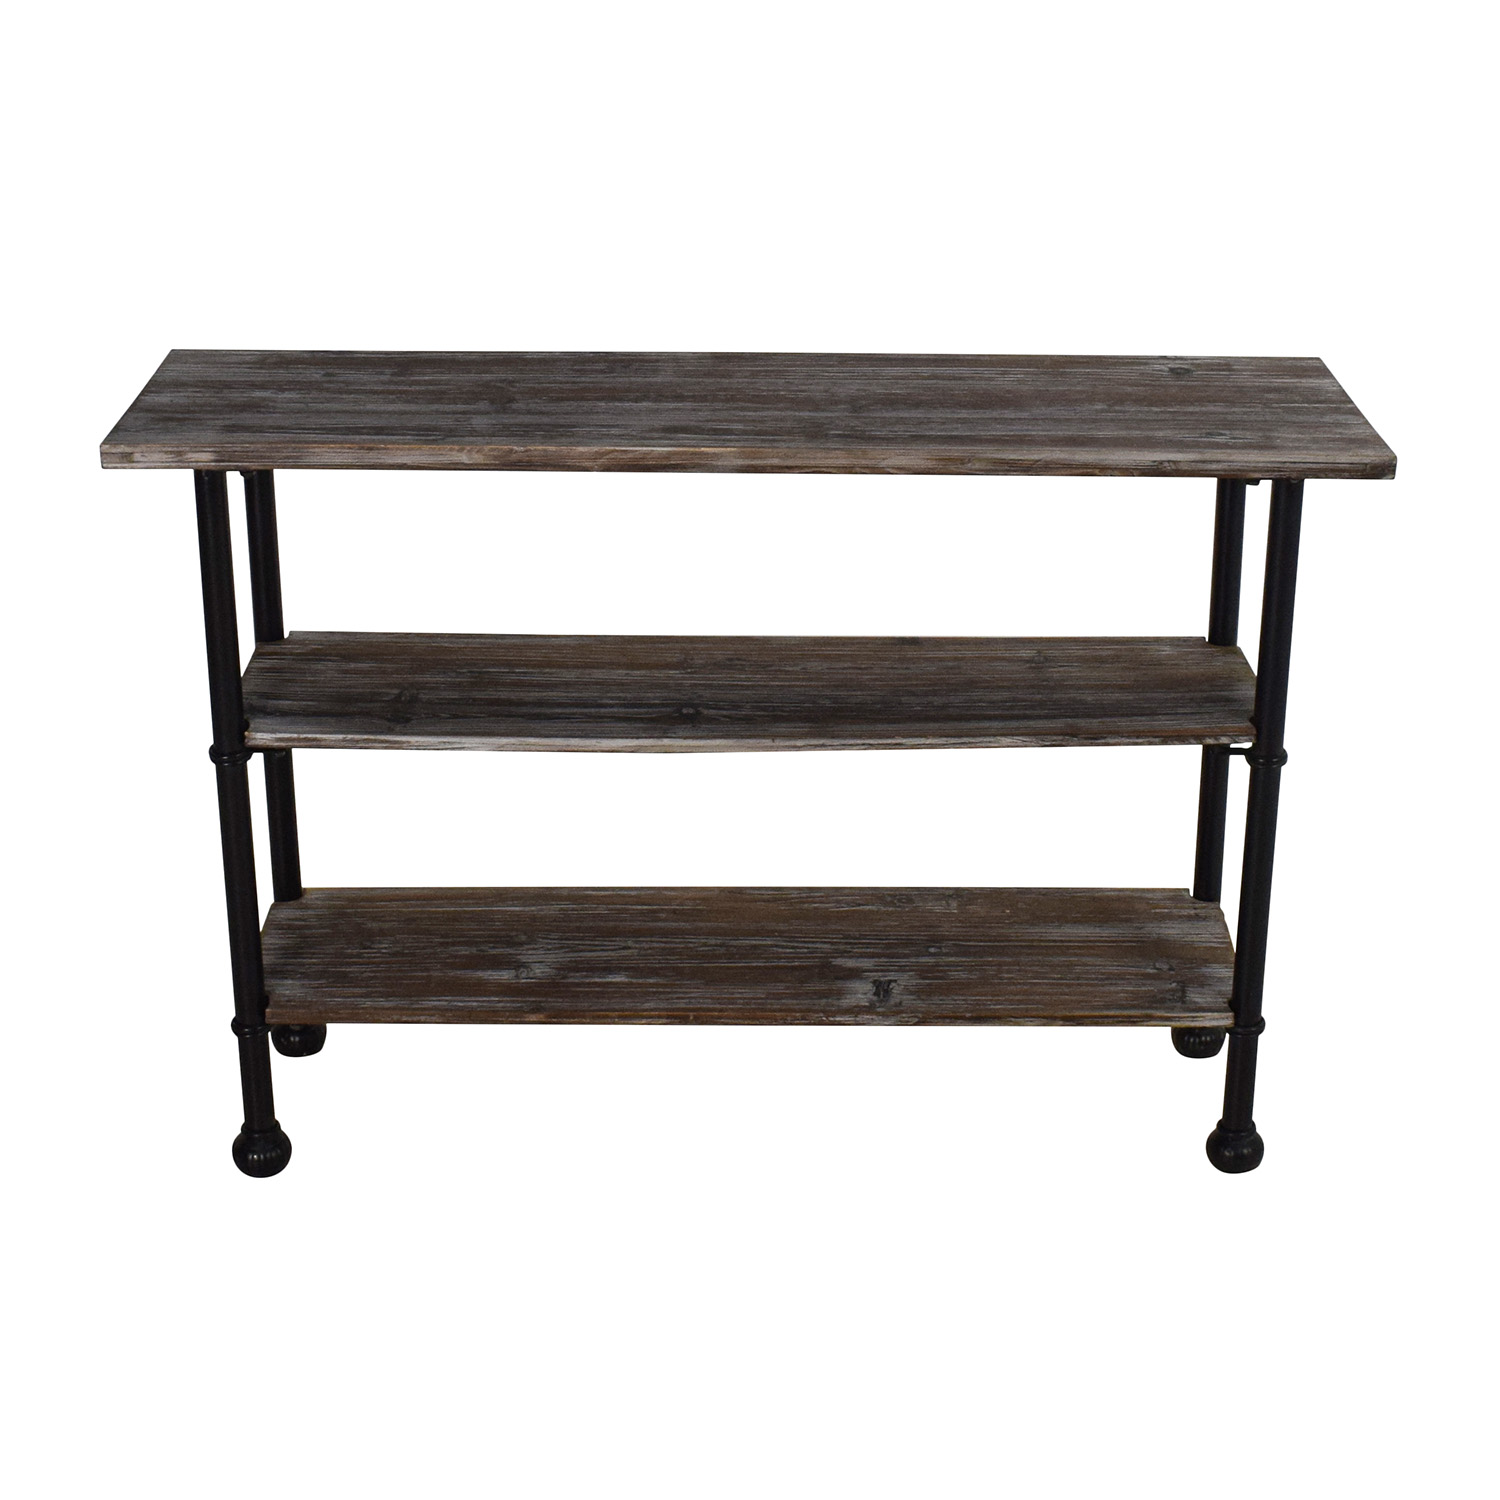 52% OFF Unknown Rustic Brown Wood 3 Tier Shelf Table Storage